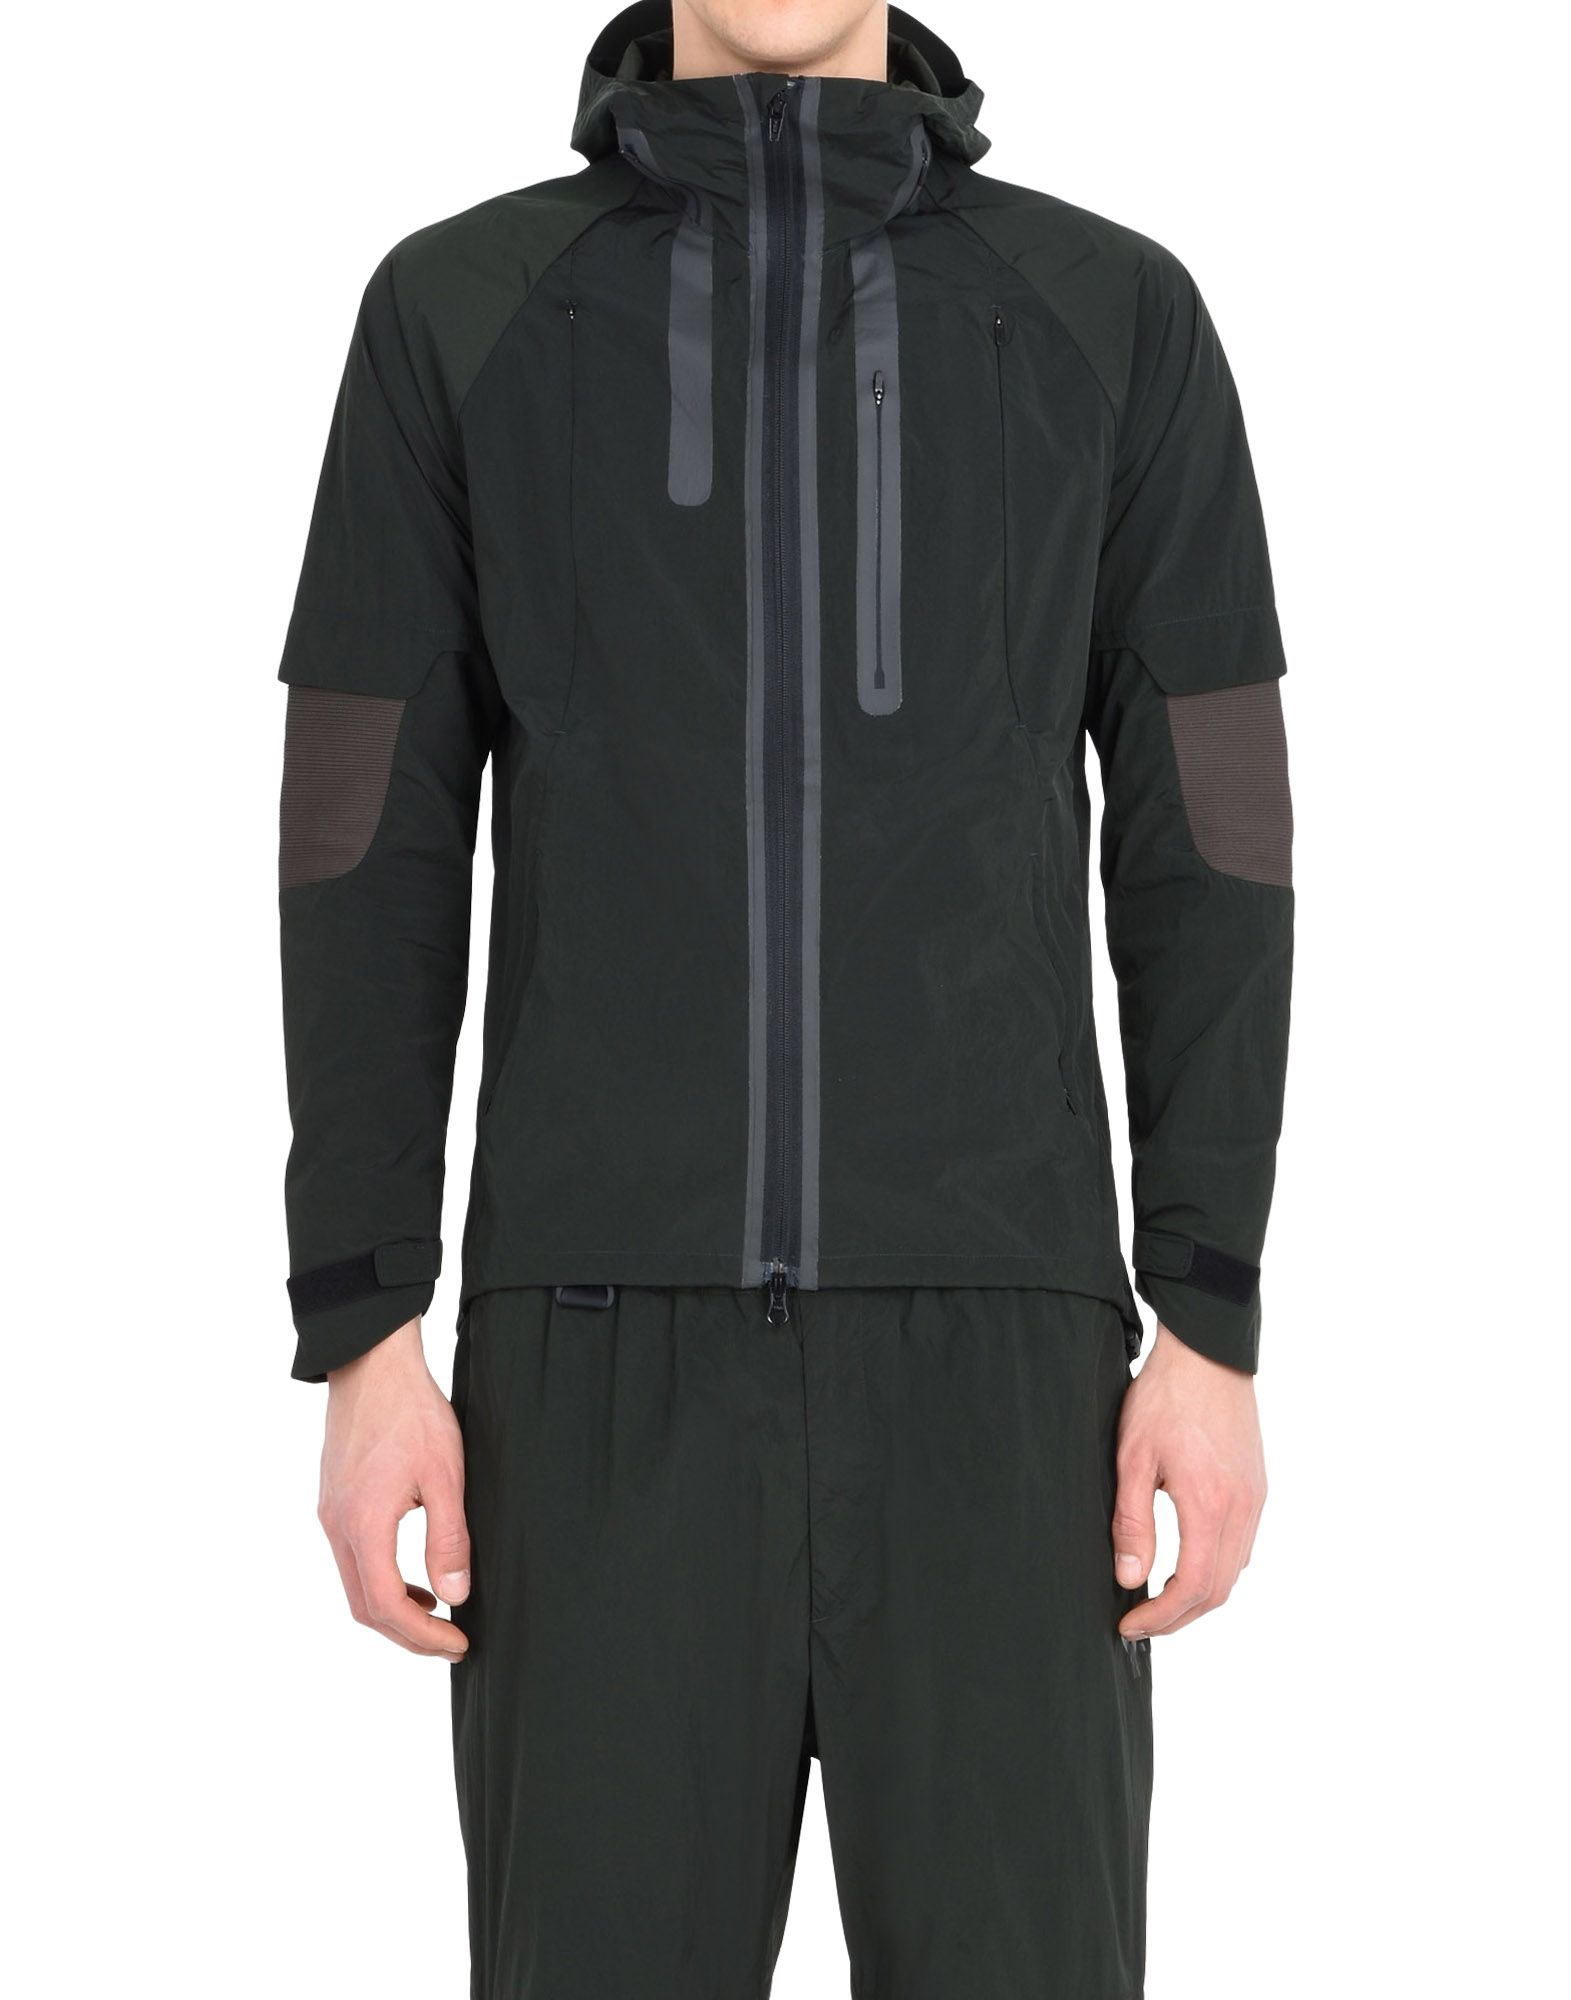 y 3 hooded jacket for men adidas y 3 official store